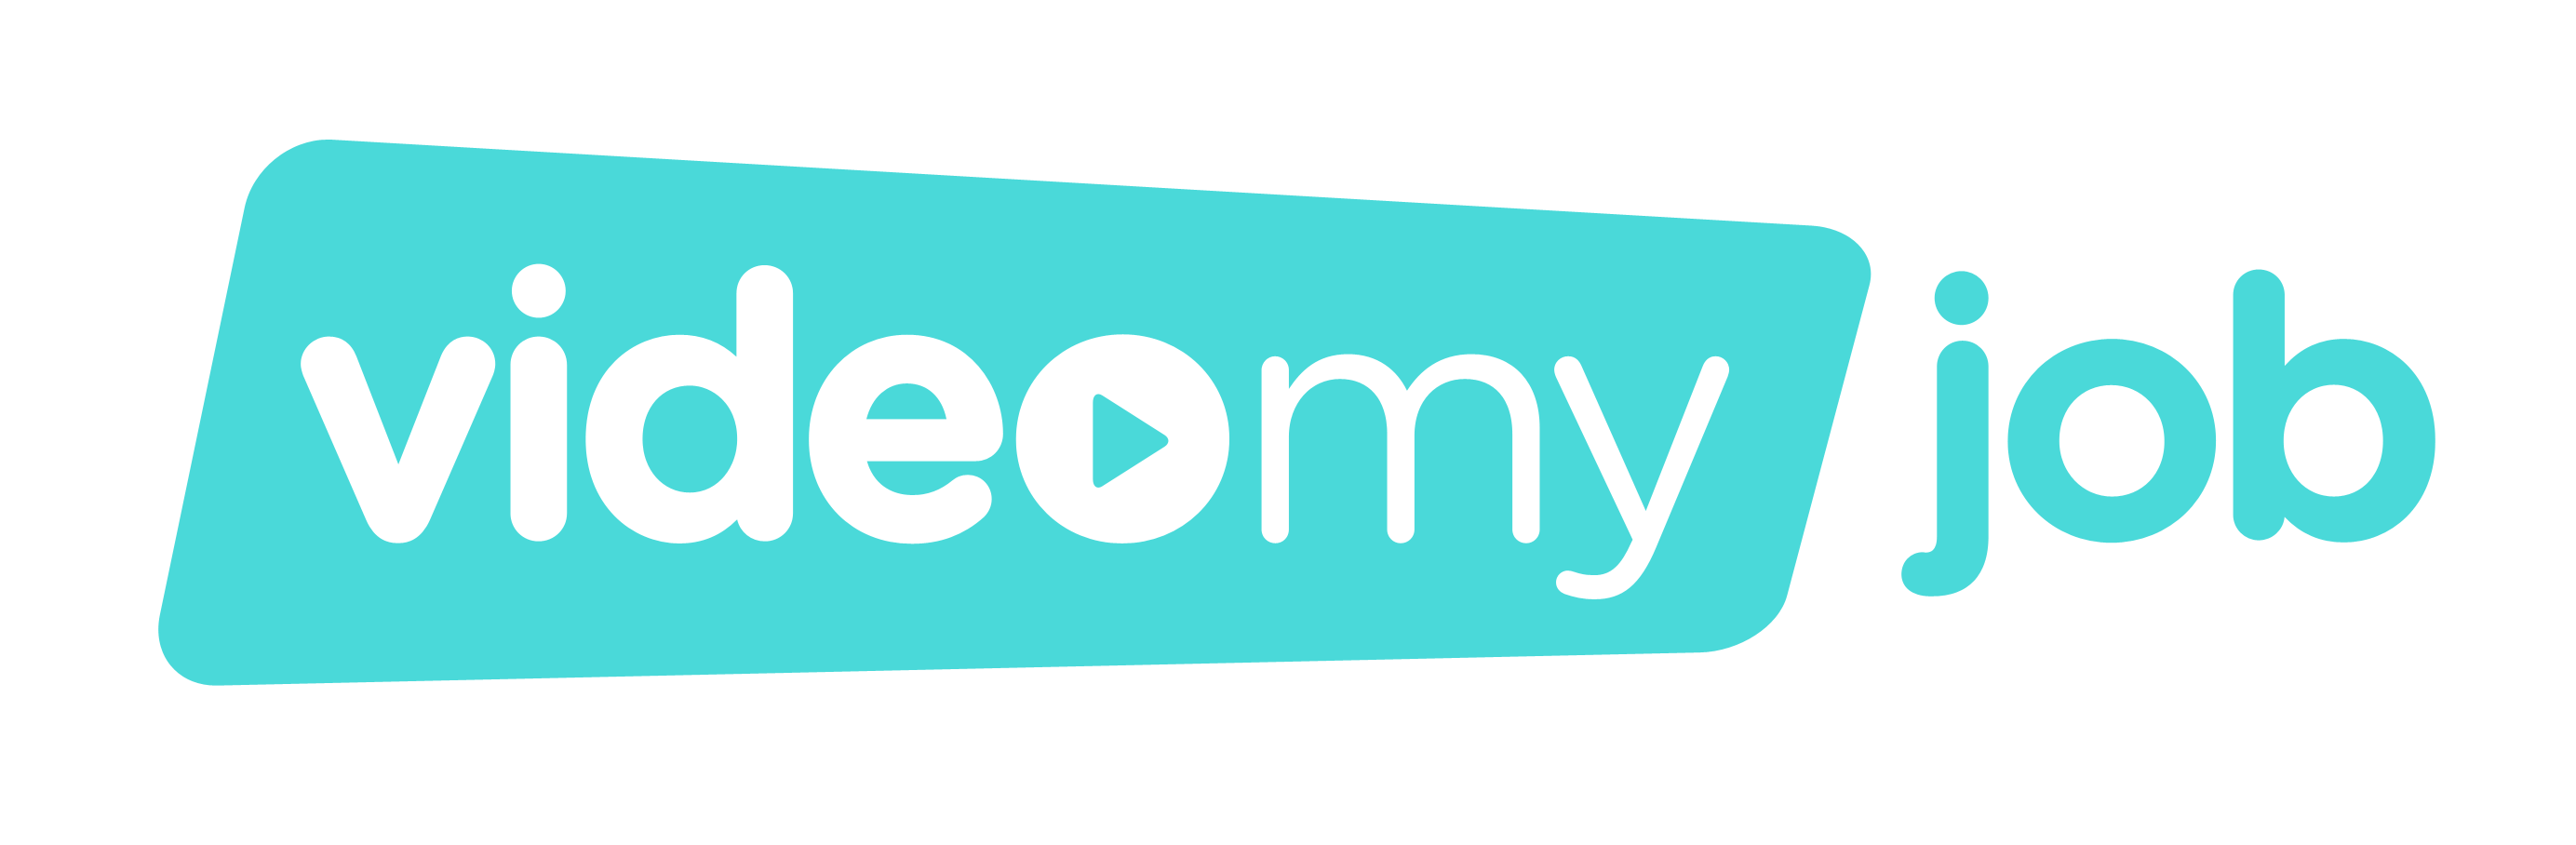 Attract, engage and retain talent with VideoMyJob